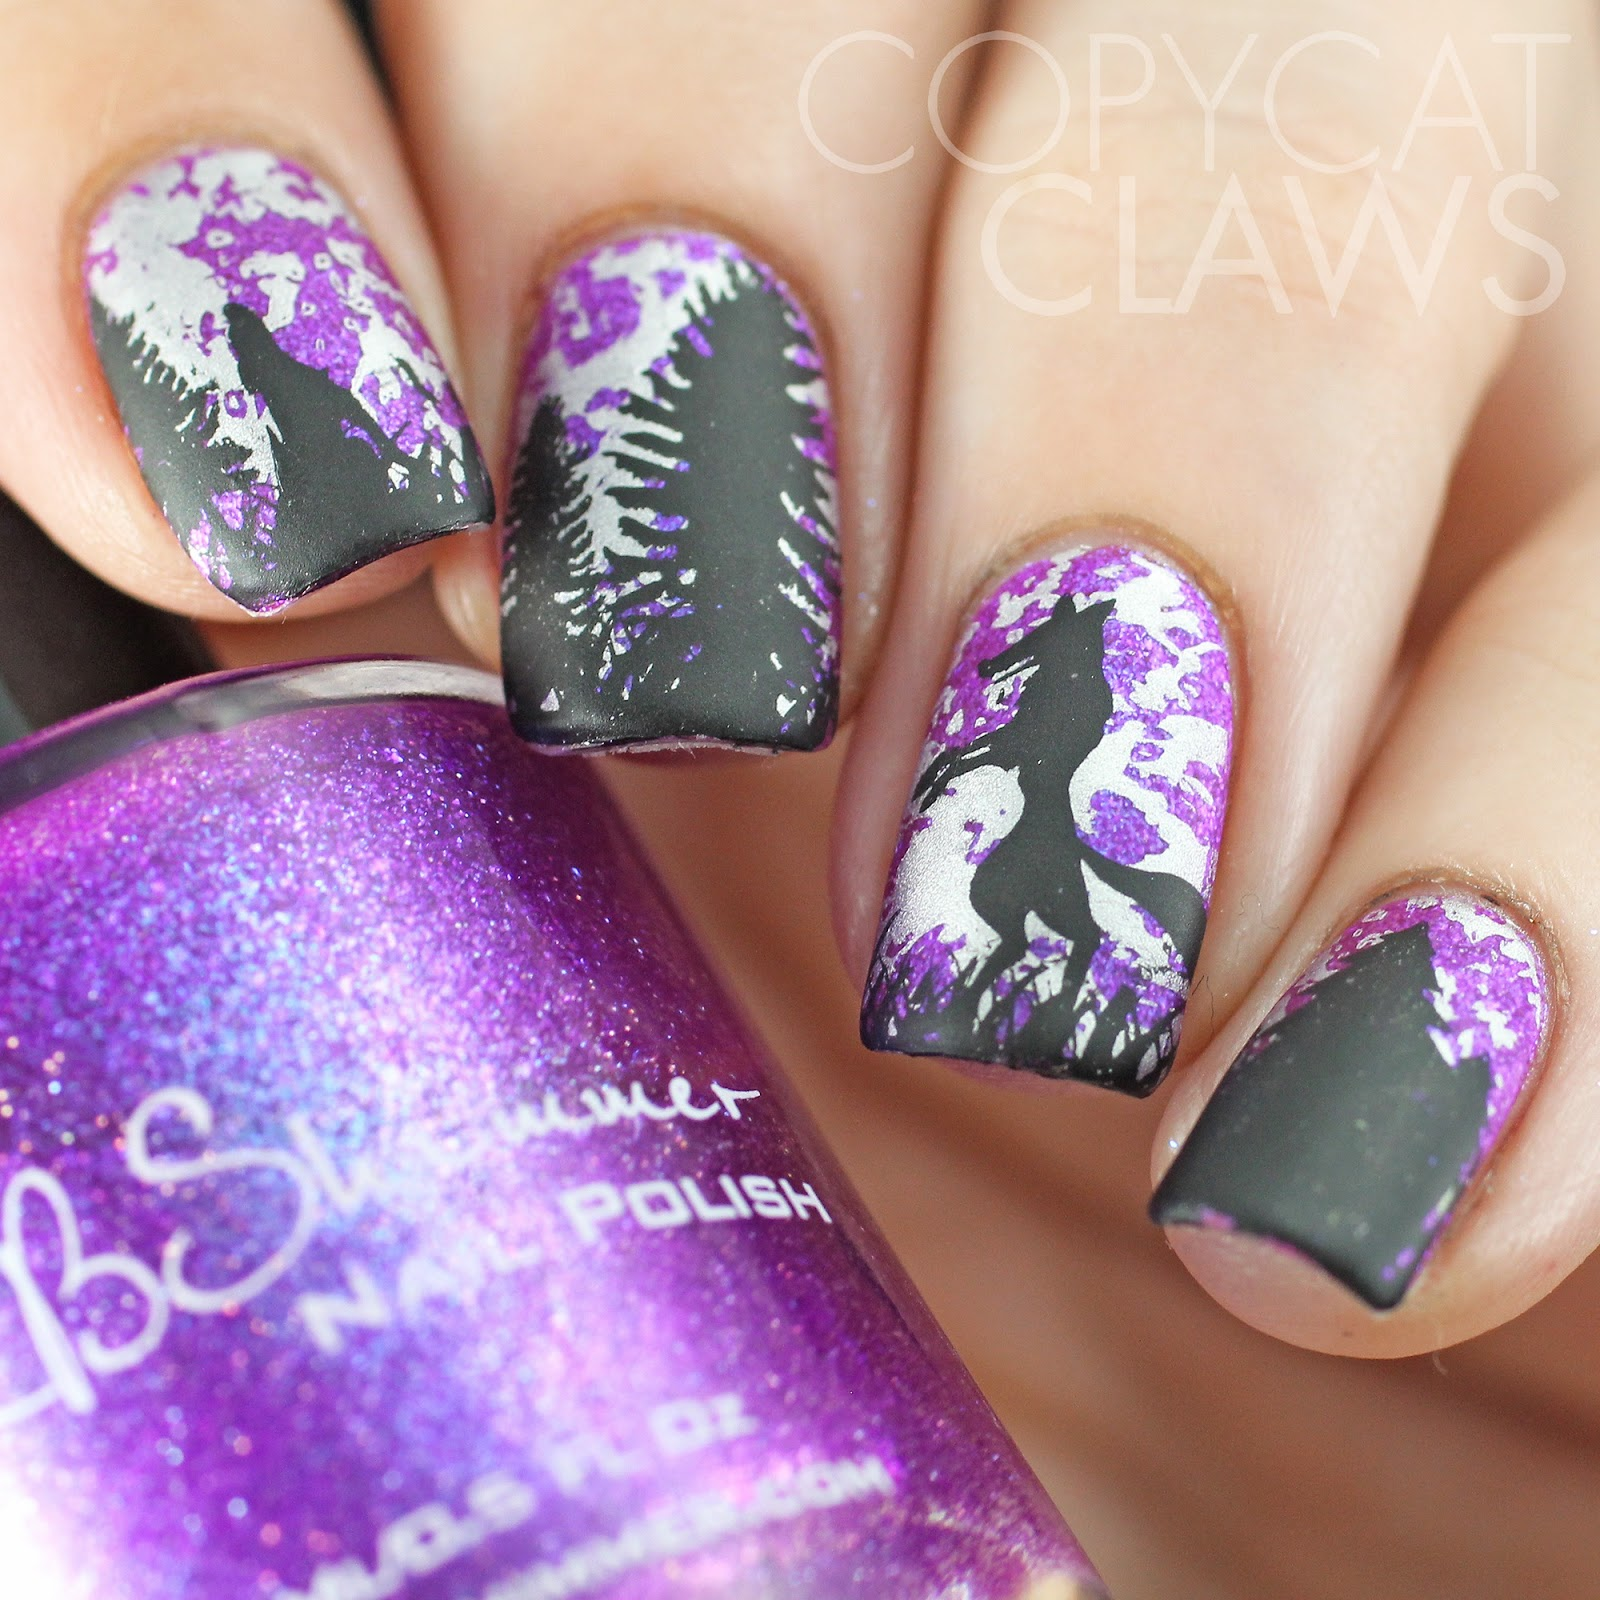 Copycat Claws Blue Color Block Nail Art: Copycat Claws: Werewolf Nail Stamping